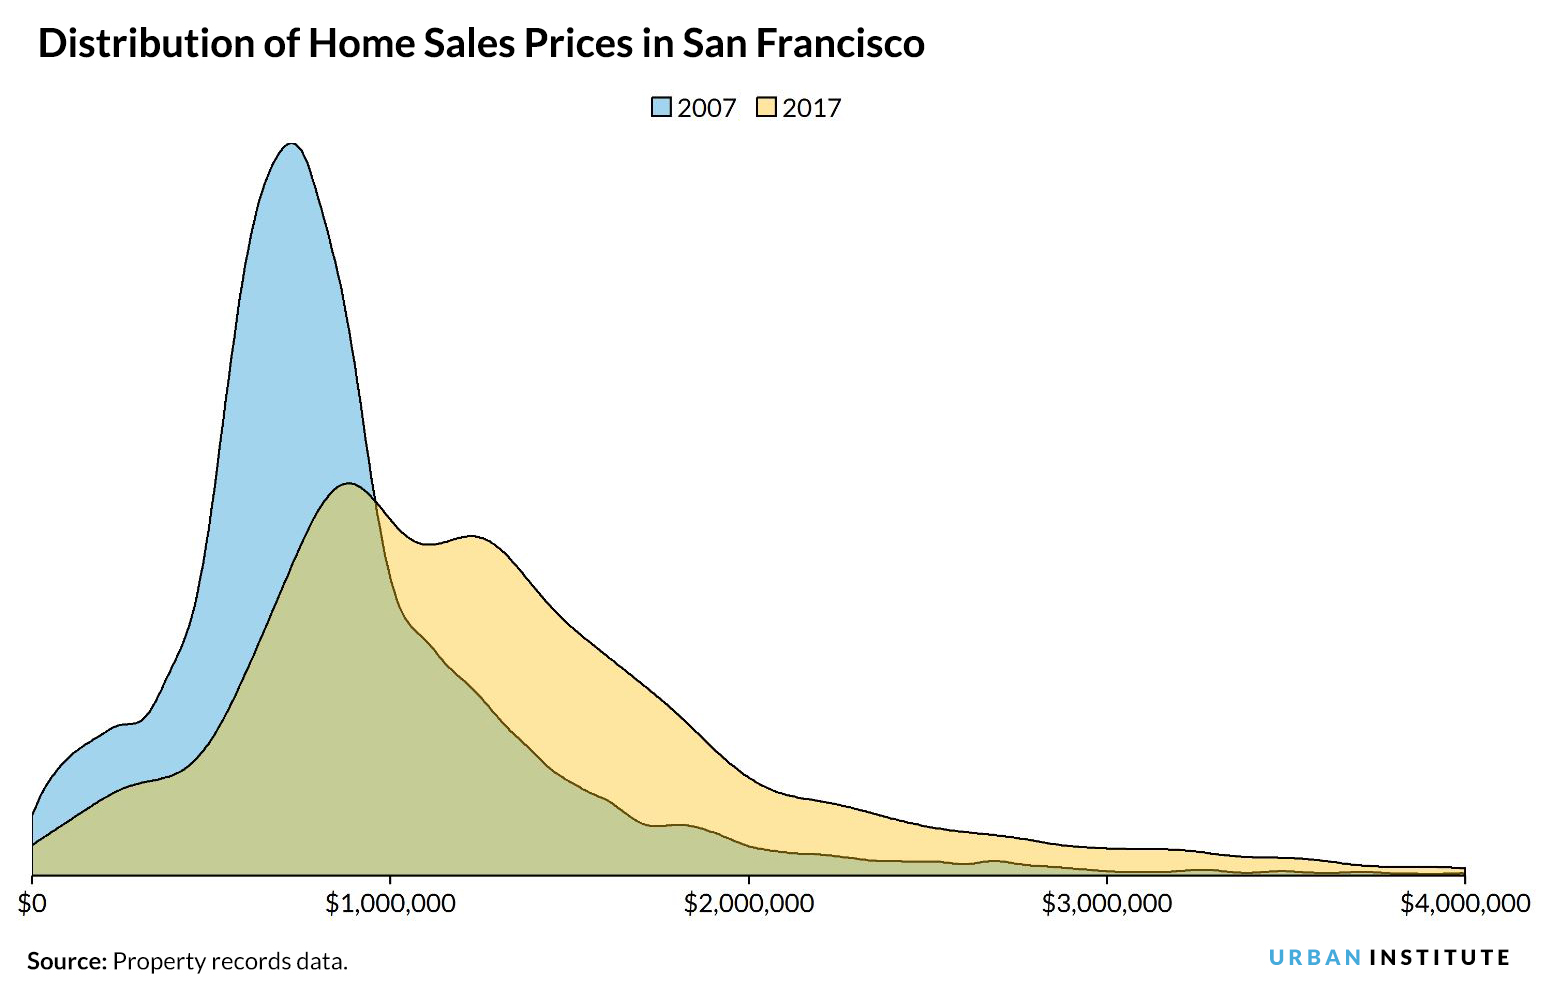 distribution of home sales prices in San Francisco